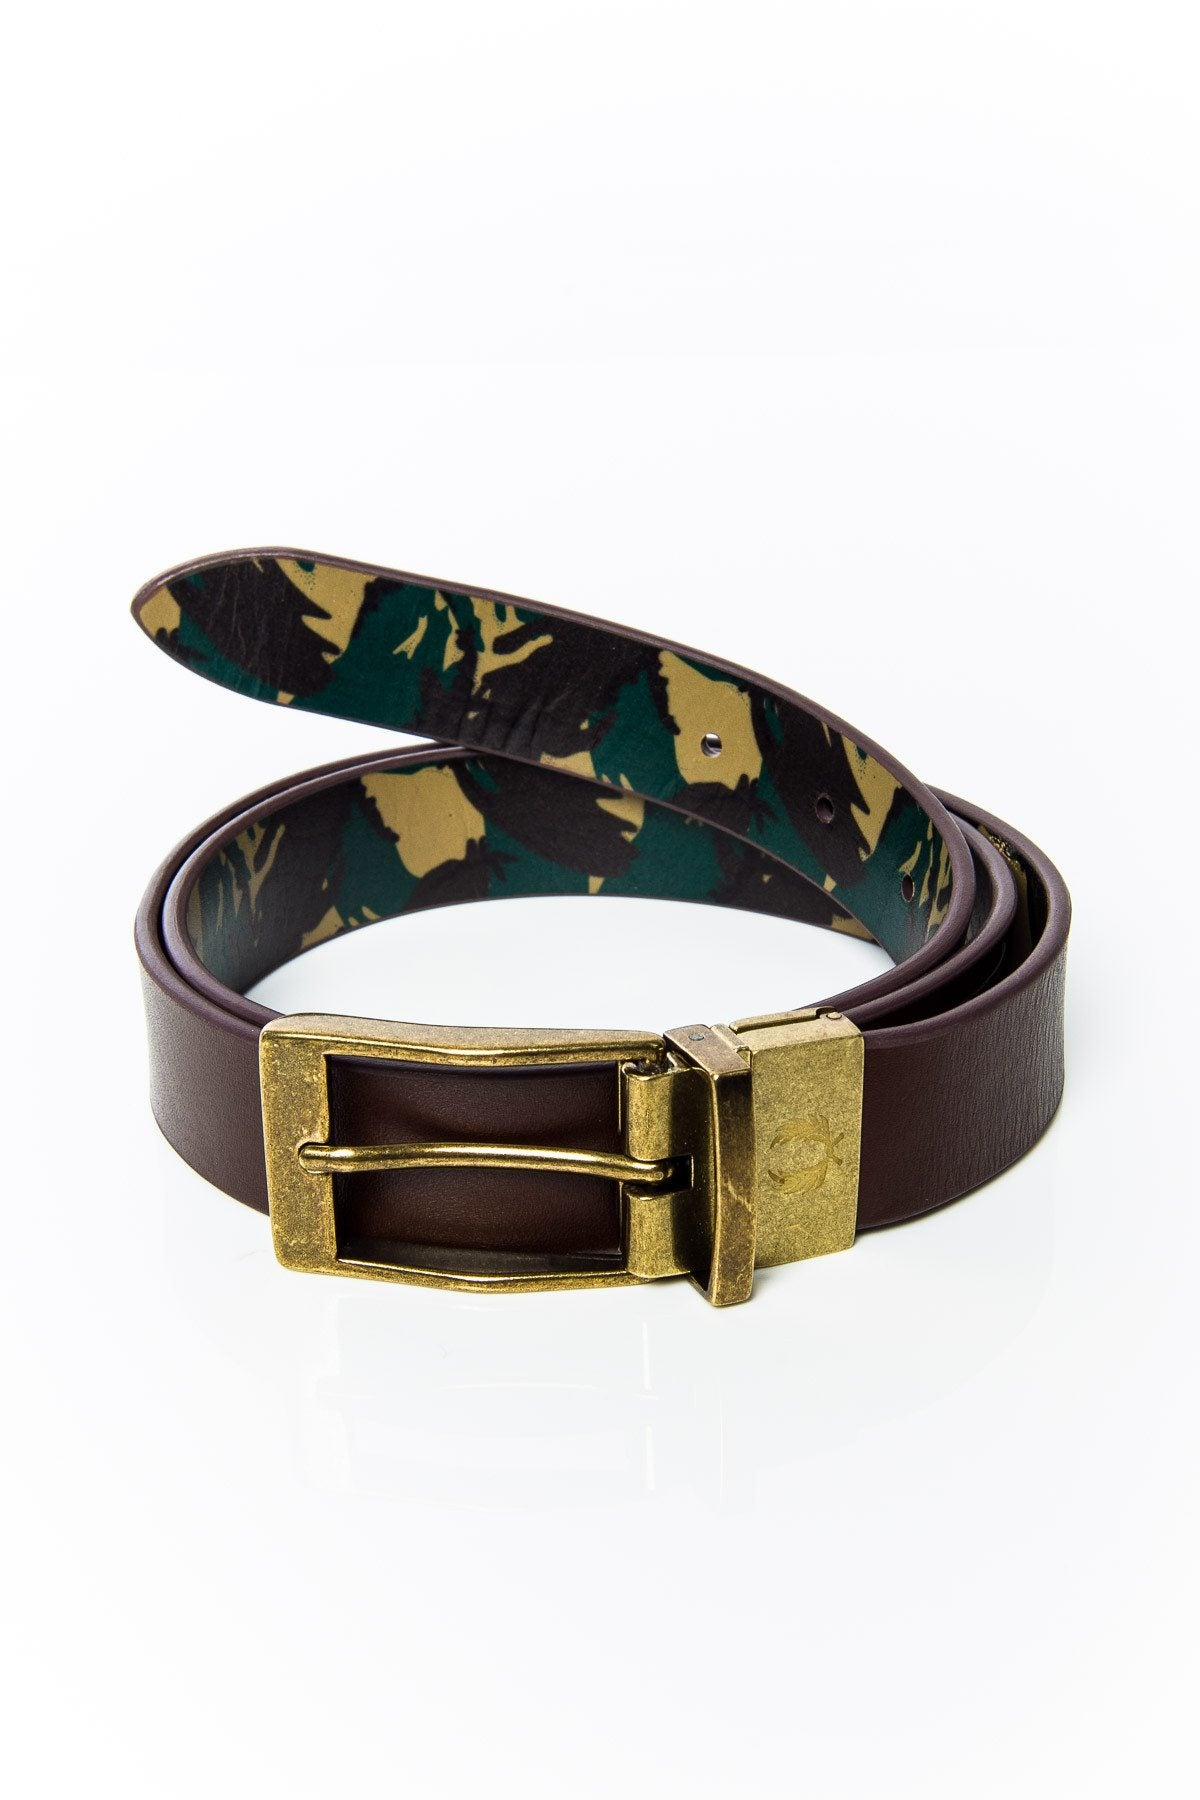 Belt - Fred Perry BT7406 Camo Print Reversible Belt Chocolate